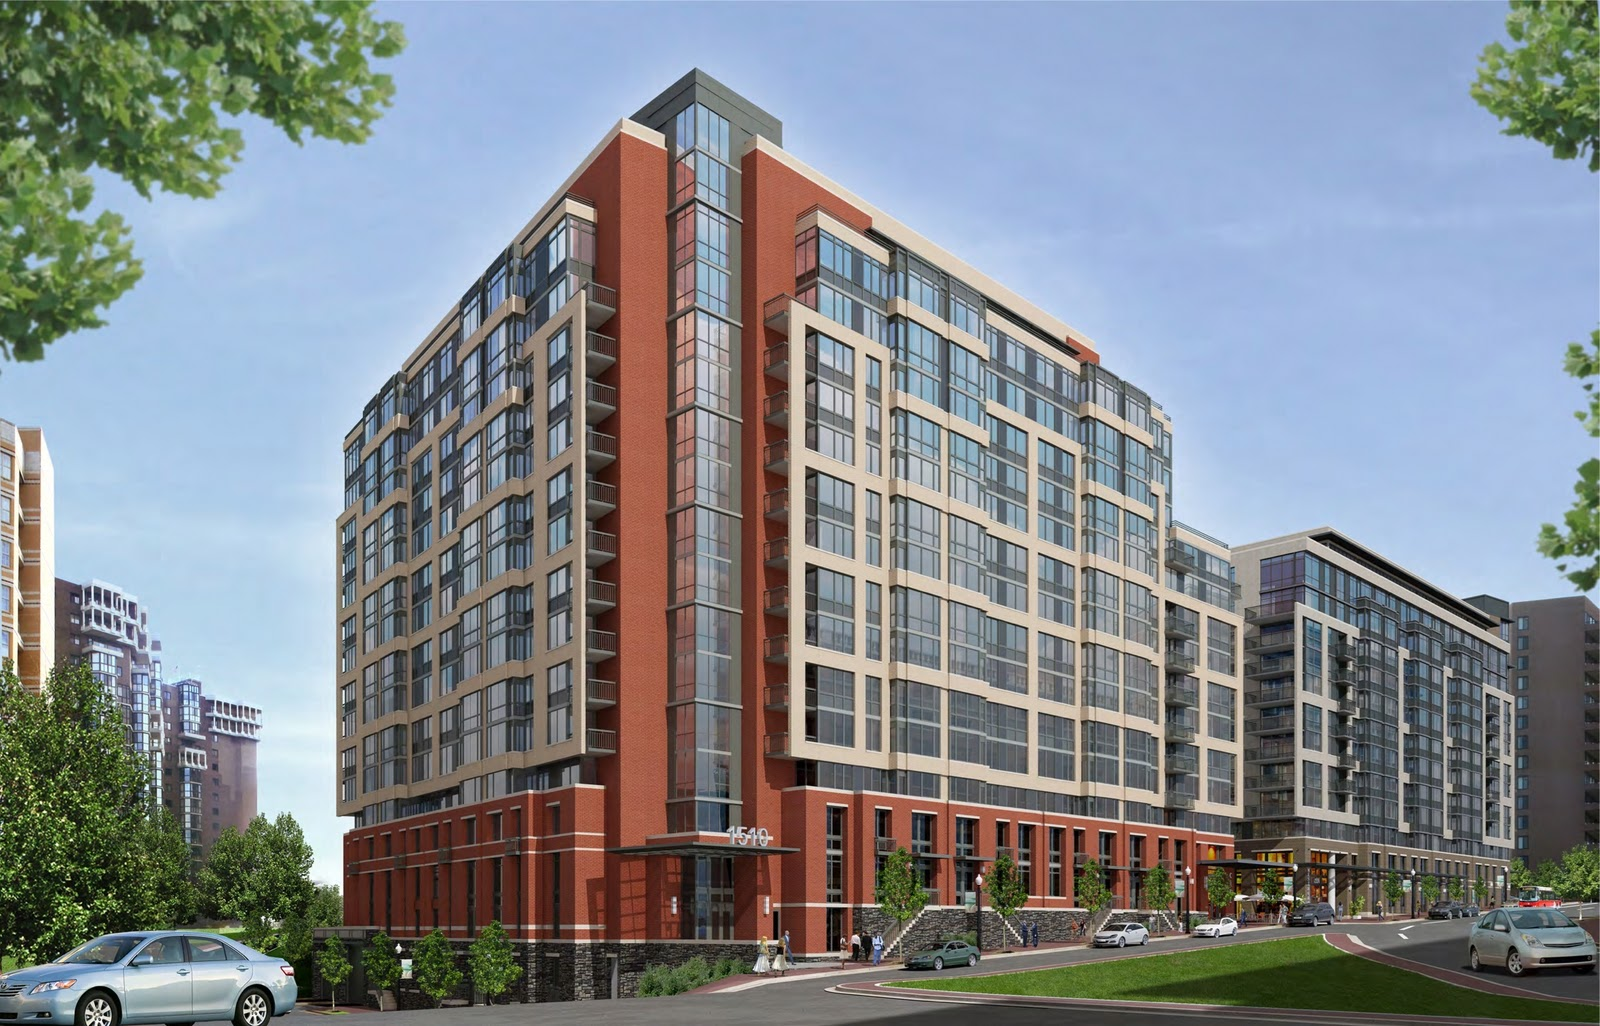 Dcmud the urban real estate digest of washington dc jbg for Apartment complex designs